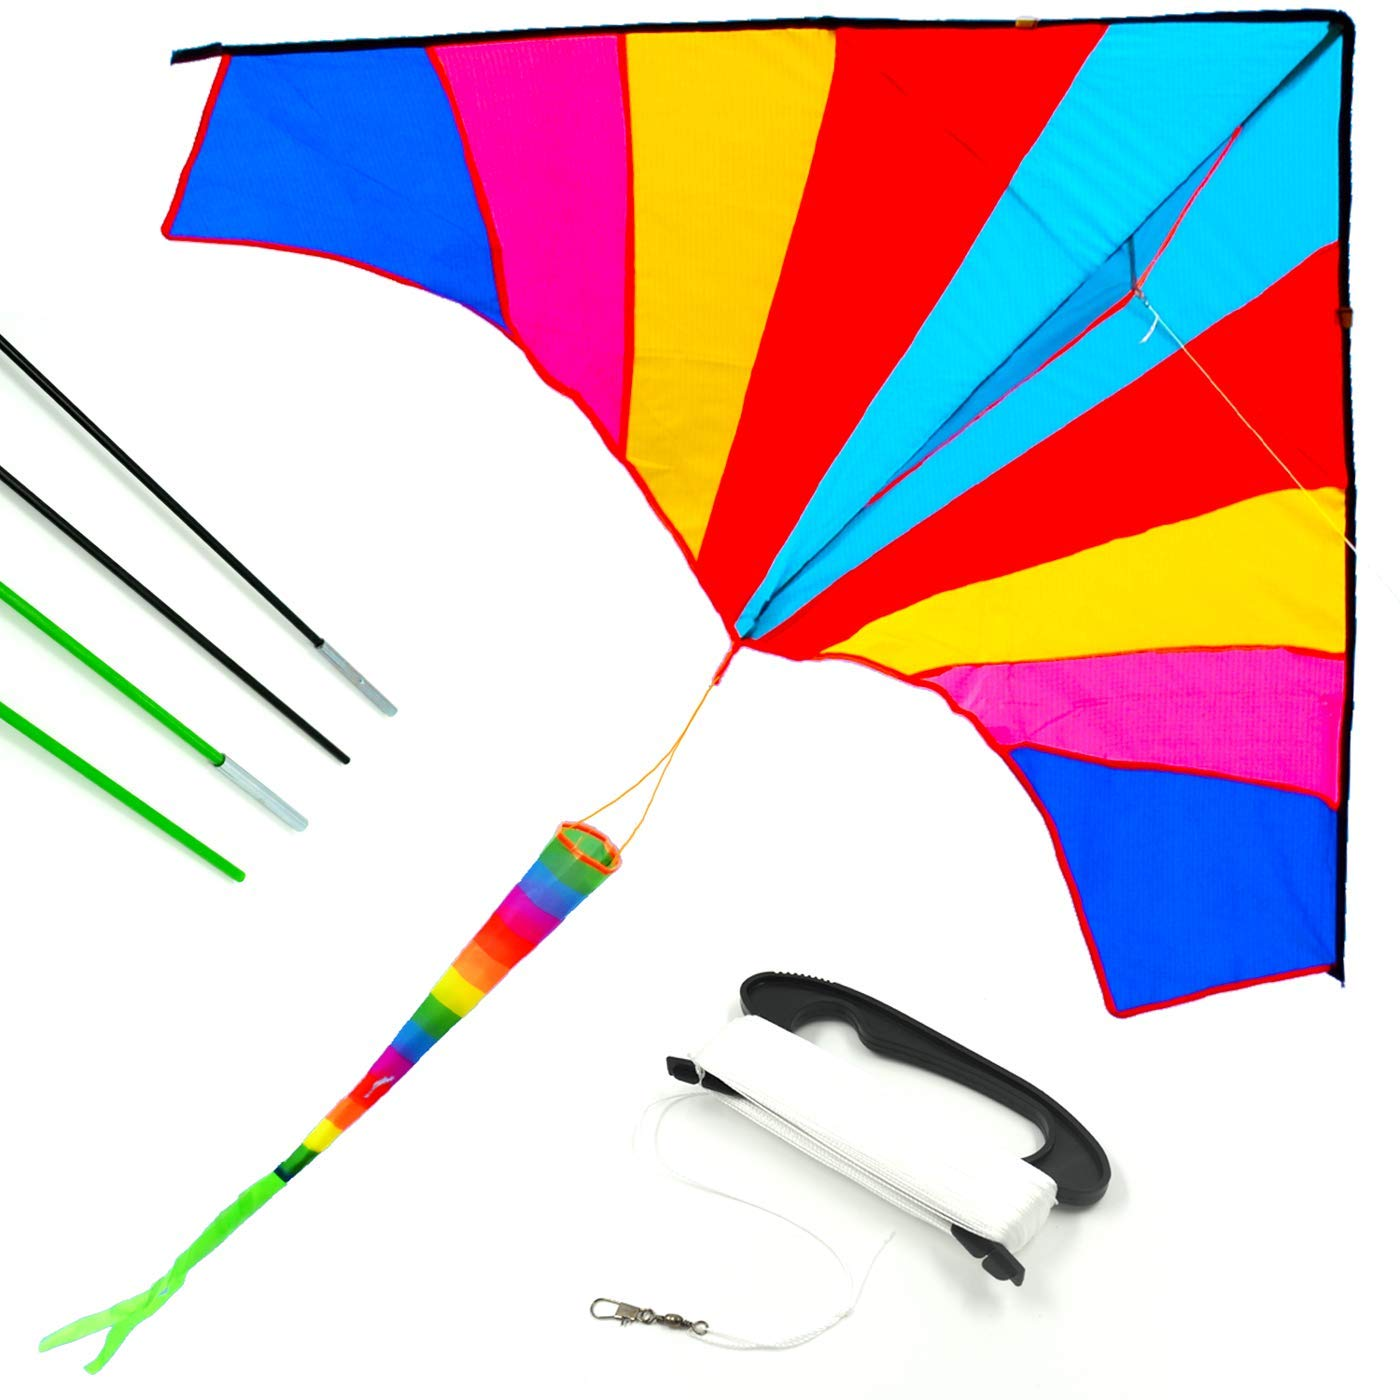 Allon Rainbow Delta Kite for Kids, Easy Fly Large Beach Kite for Beginners and Adults, Perfect Toys for Outdoor Games and Activities, Giant Size 60 x 80 Inches, Bonus with 330' String Line